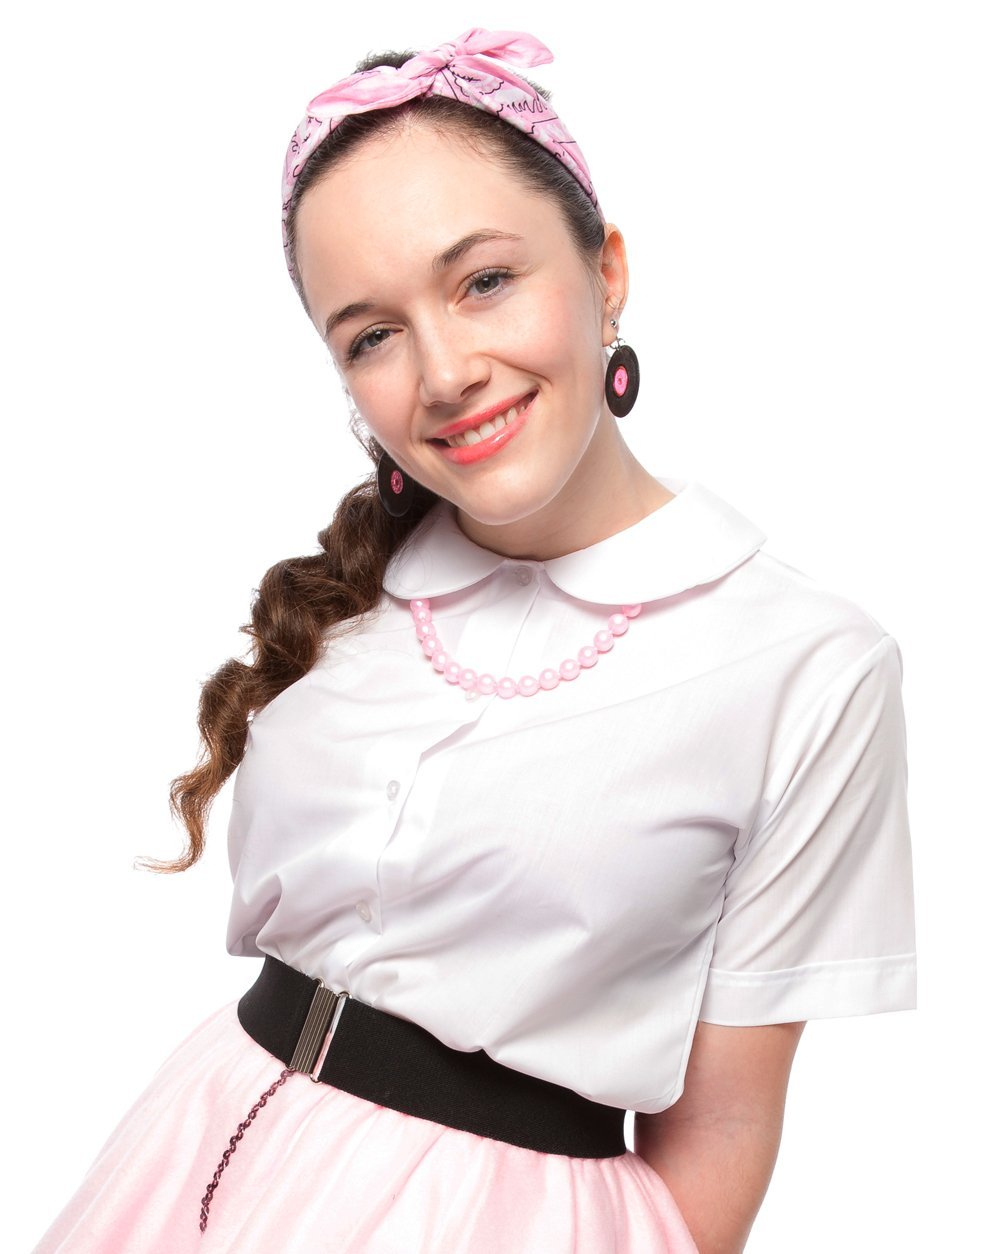 Peter Pan Blouse - Adult S (White)